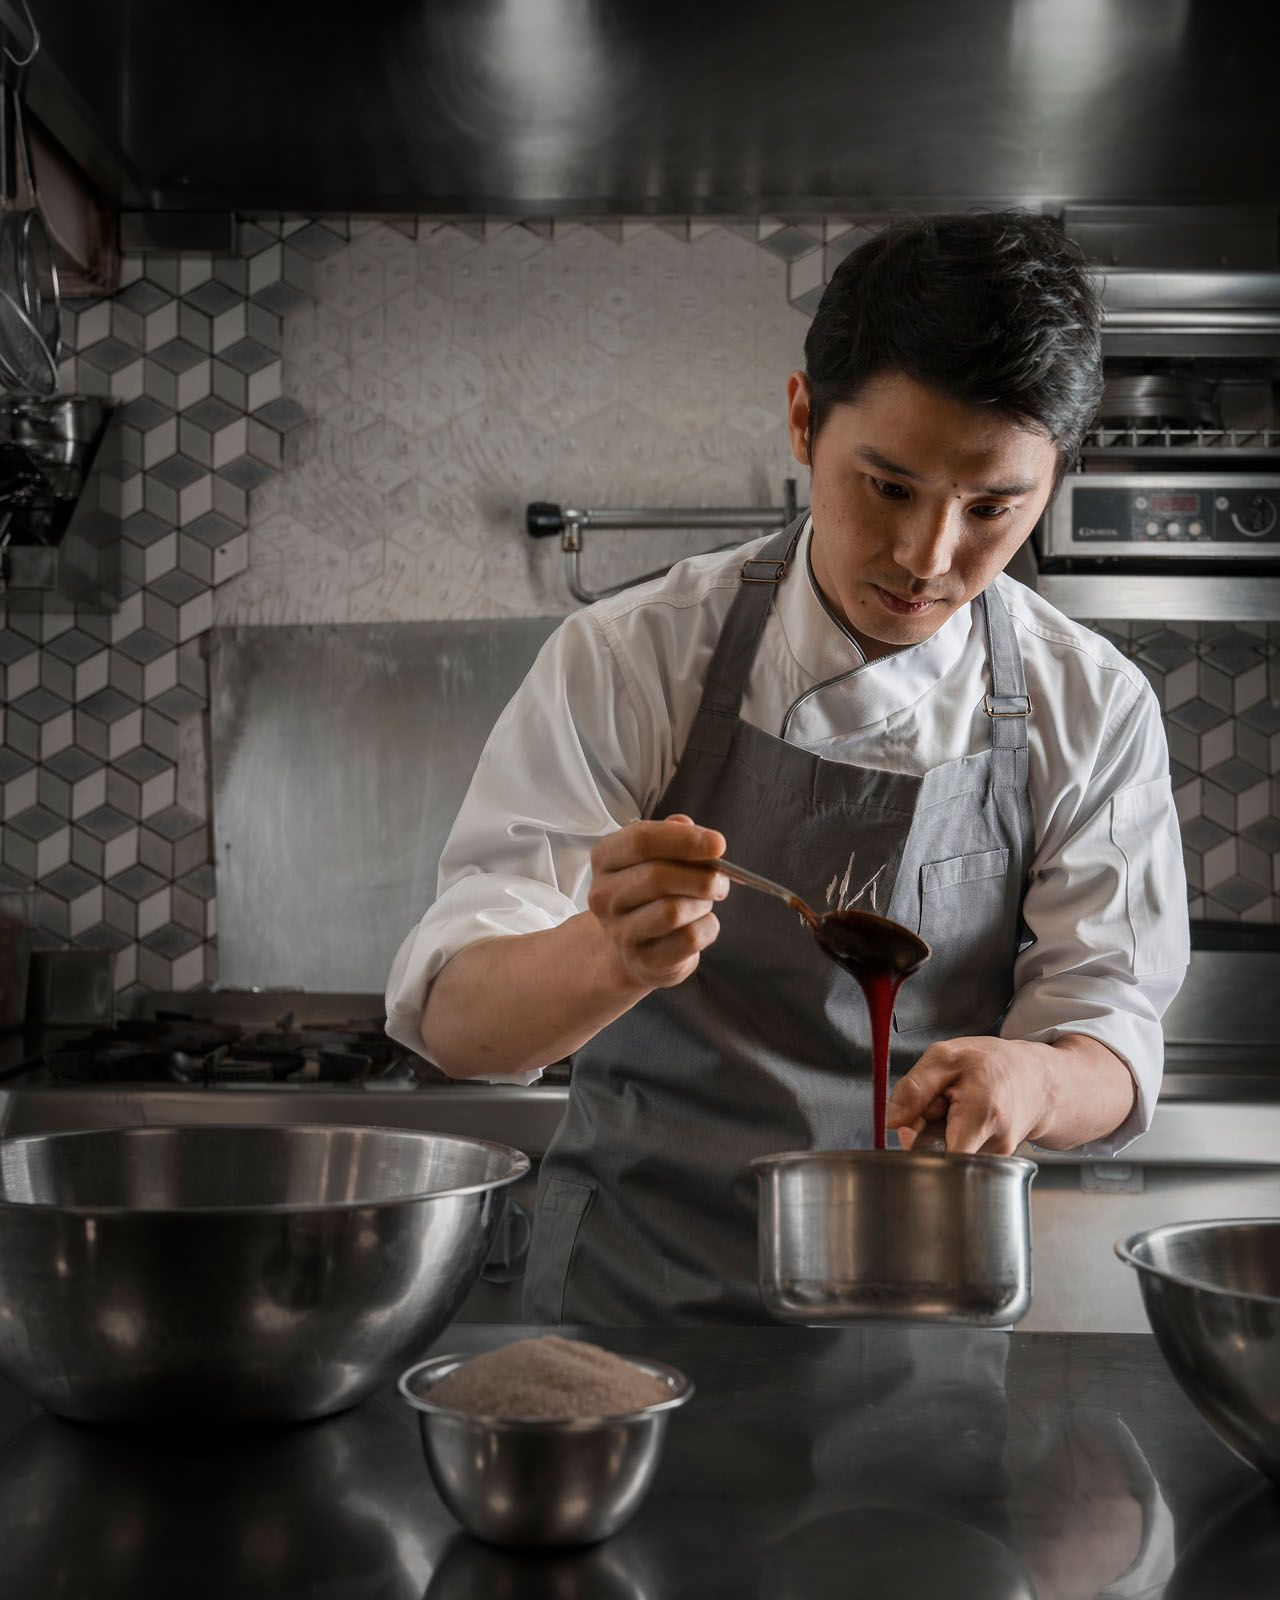 Whitegrass Re-Opens With Japanese Chef Takuya Yamashita At The Helm